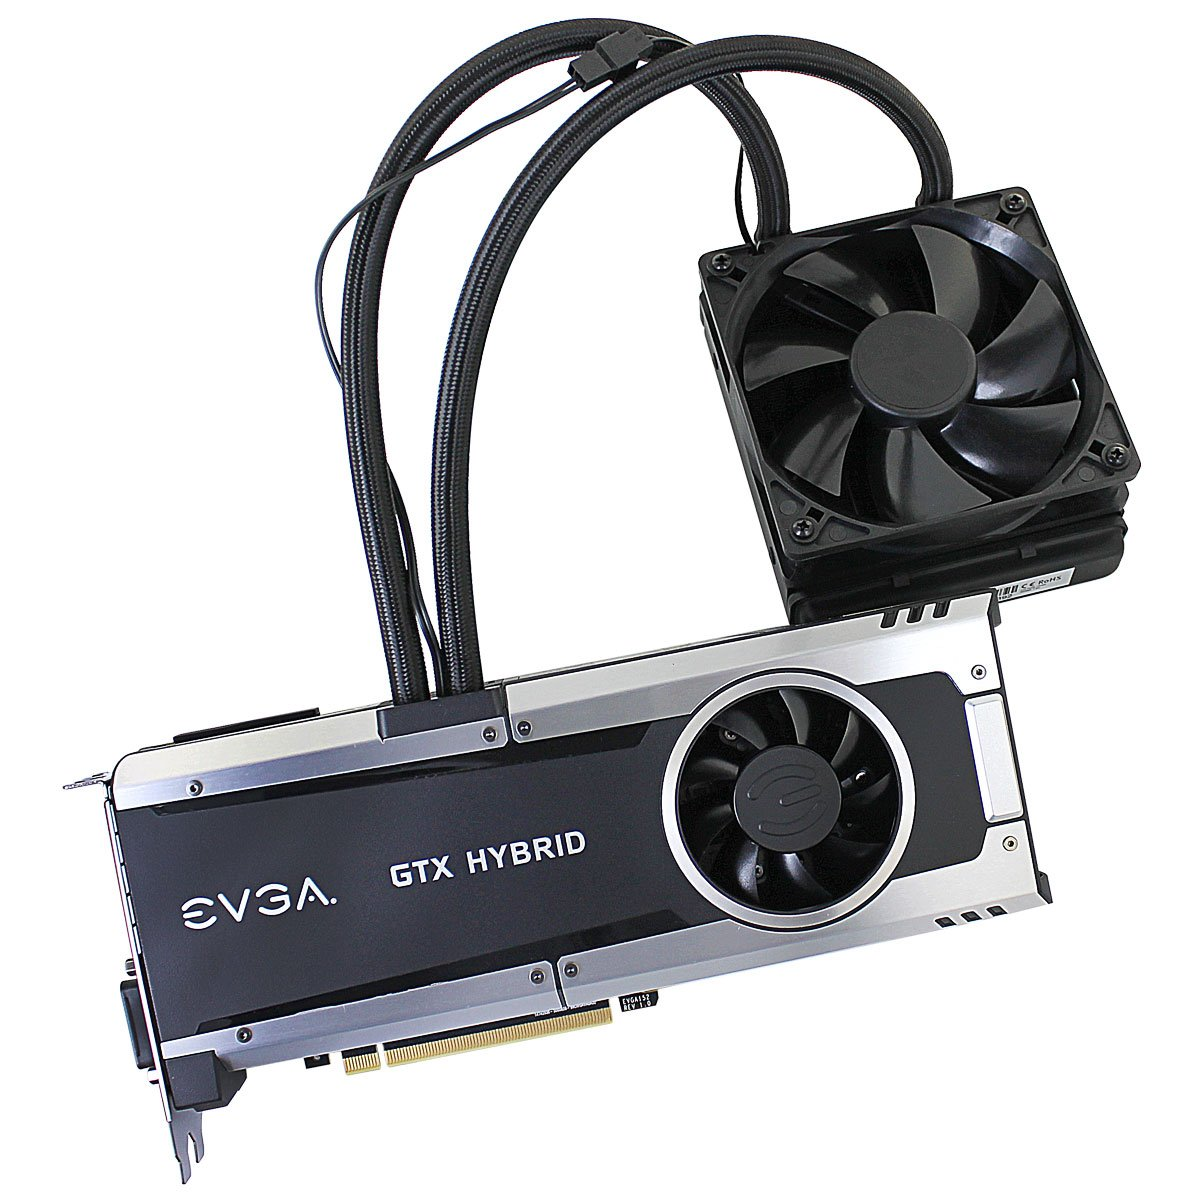 EVGA GeForce GTX 980 Ti 6GB HYBRID GAMING, ''All in One'' No Hassle Water Cooling, Just Plug and Play Graphics Card 06G-P4-1996-KR by EVGA (Image #4)